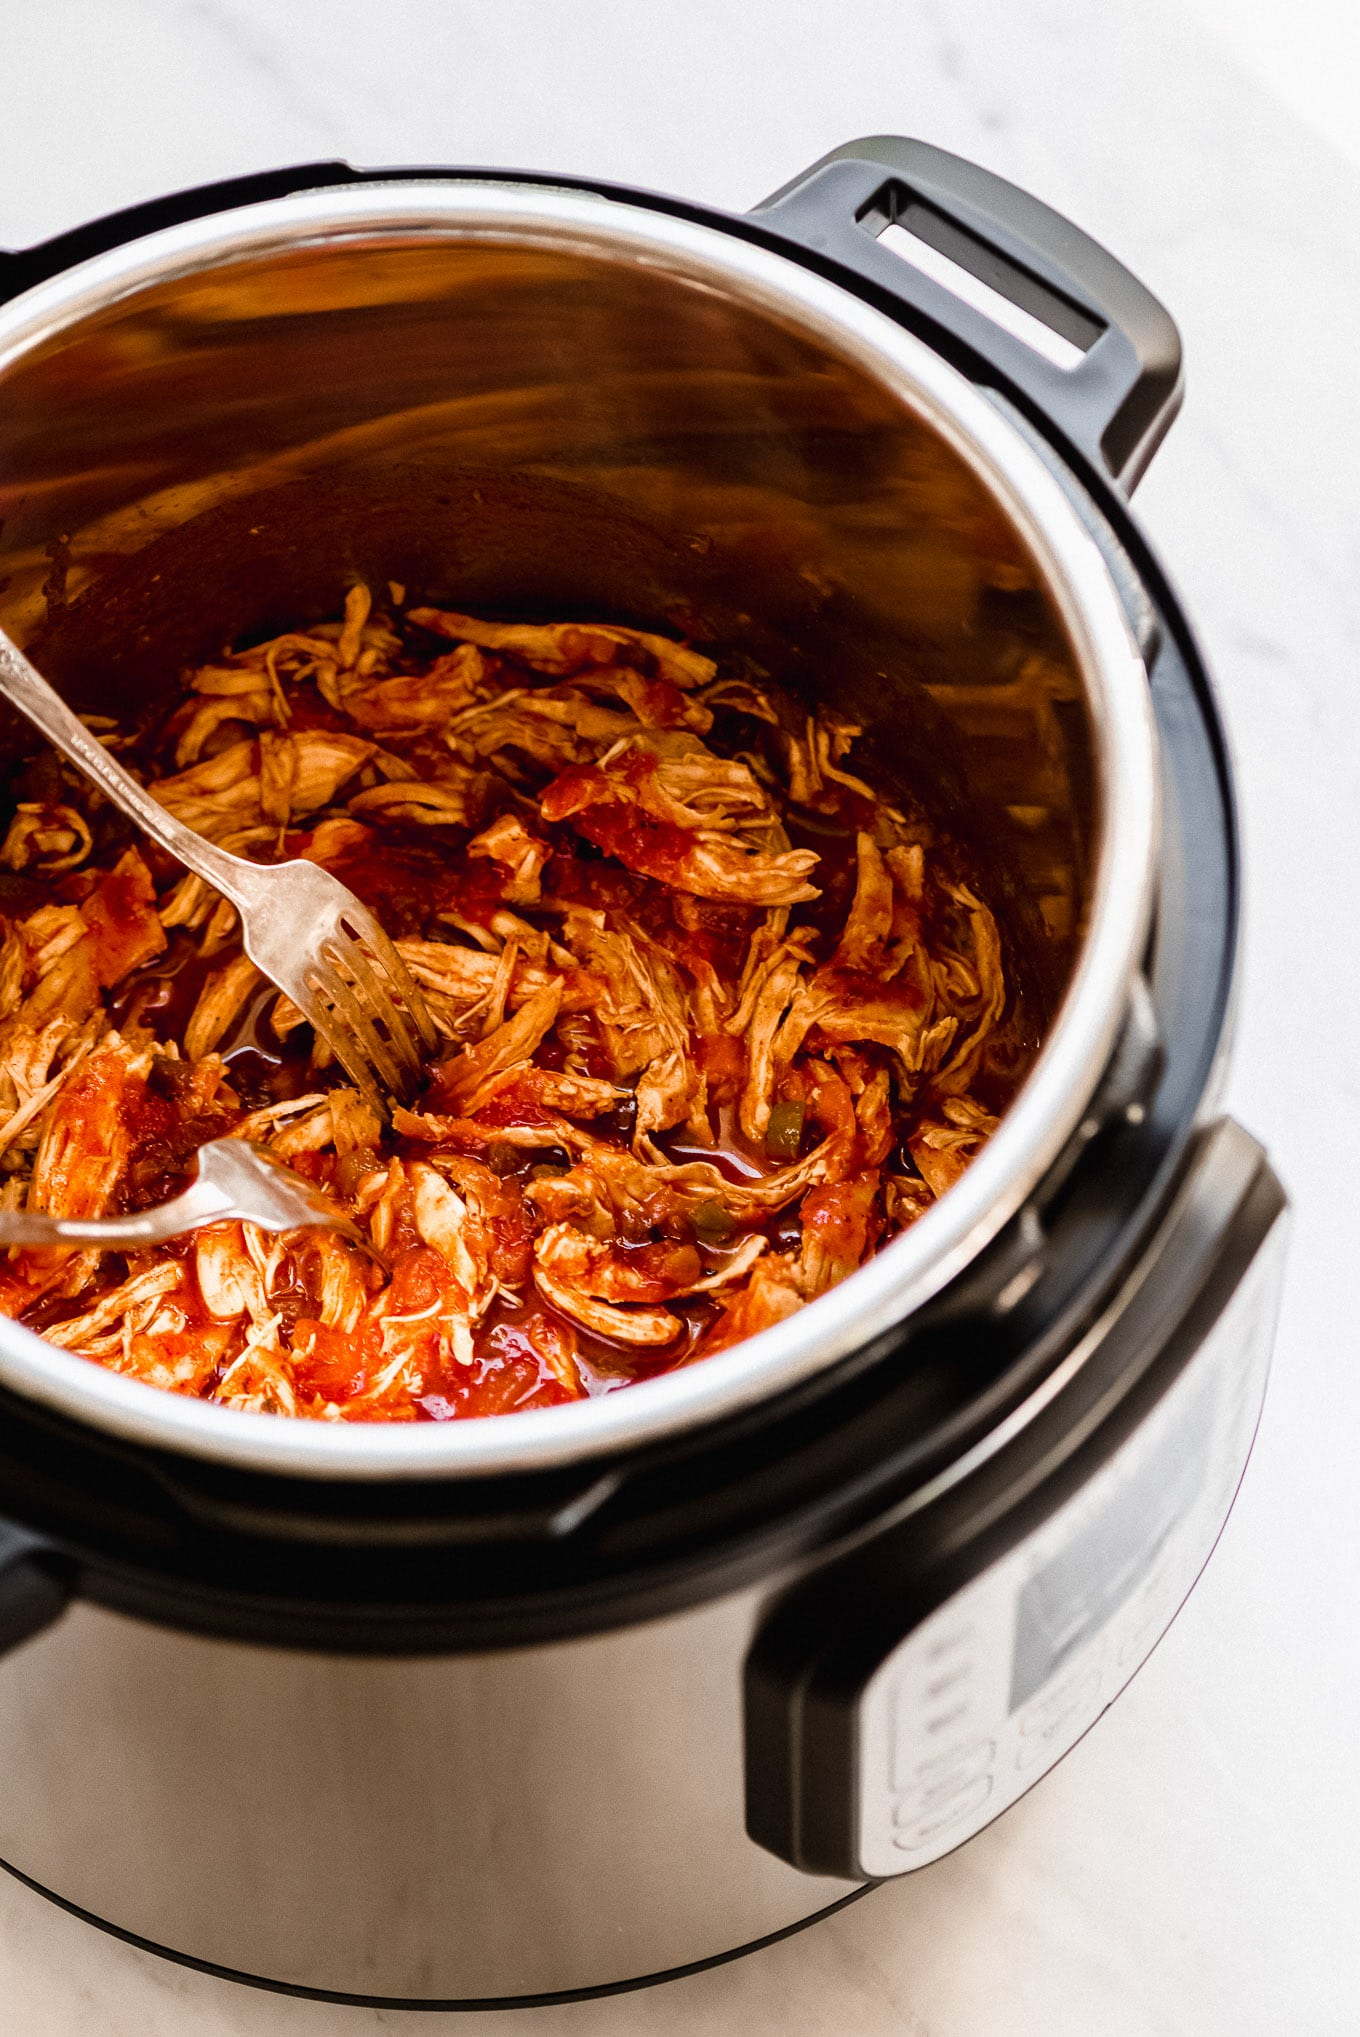 Shredded Instant Pot Salsa Chicken in the pressure cooker.